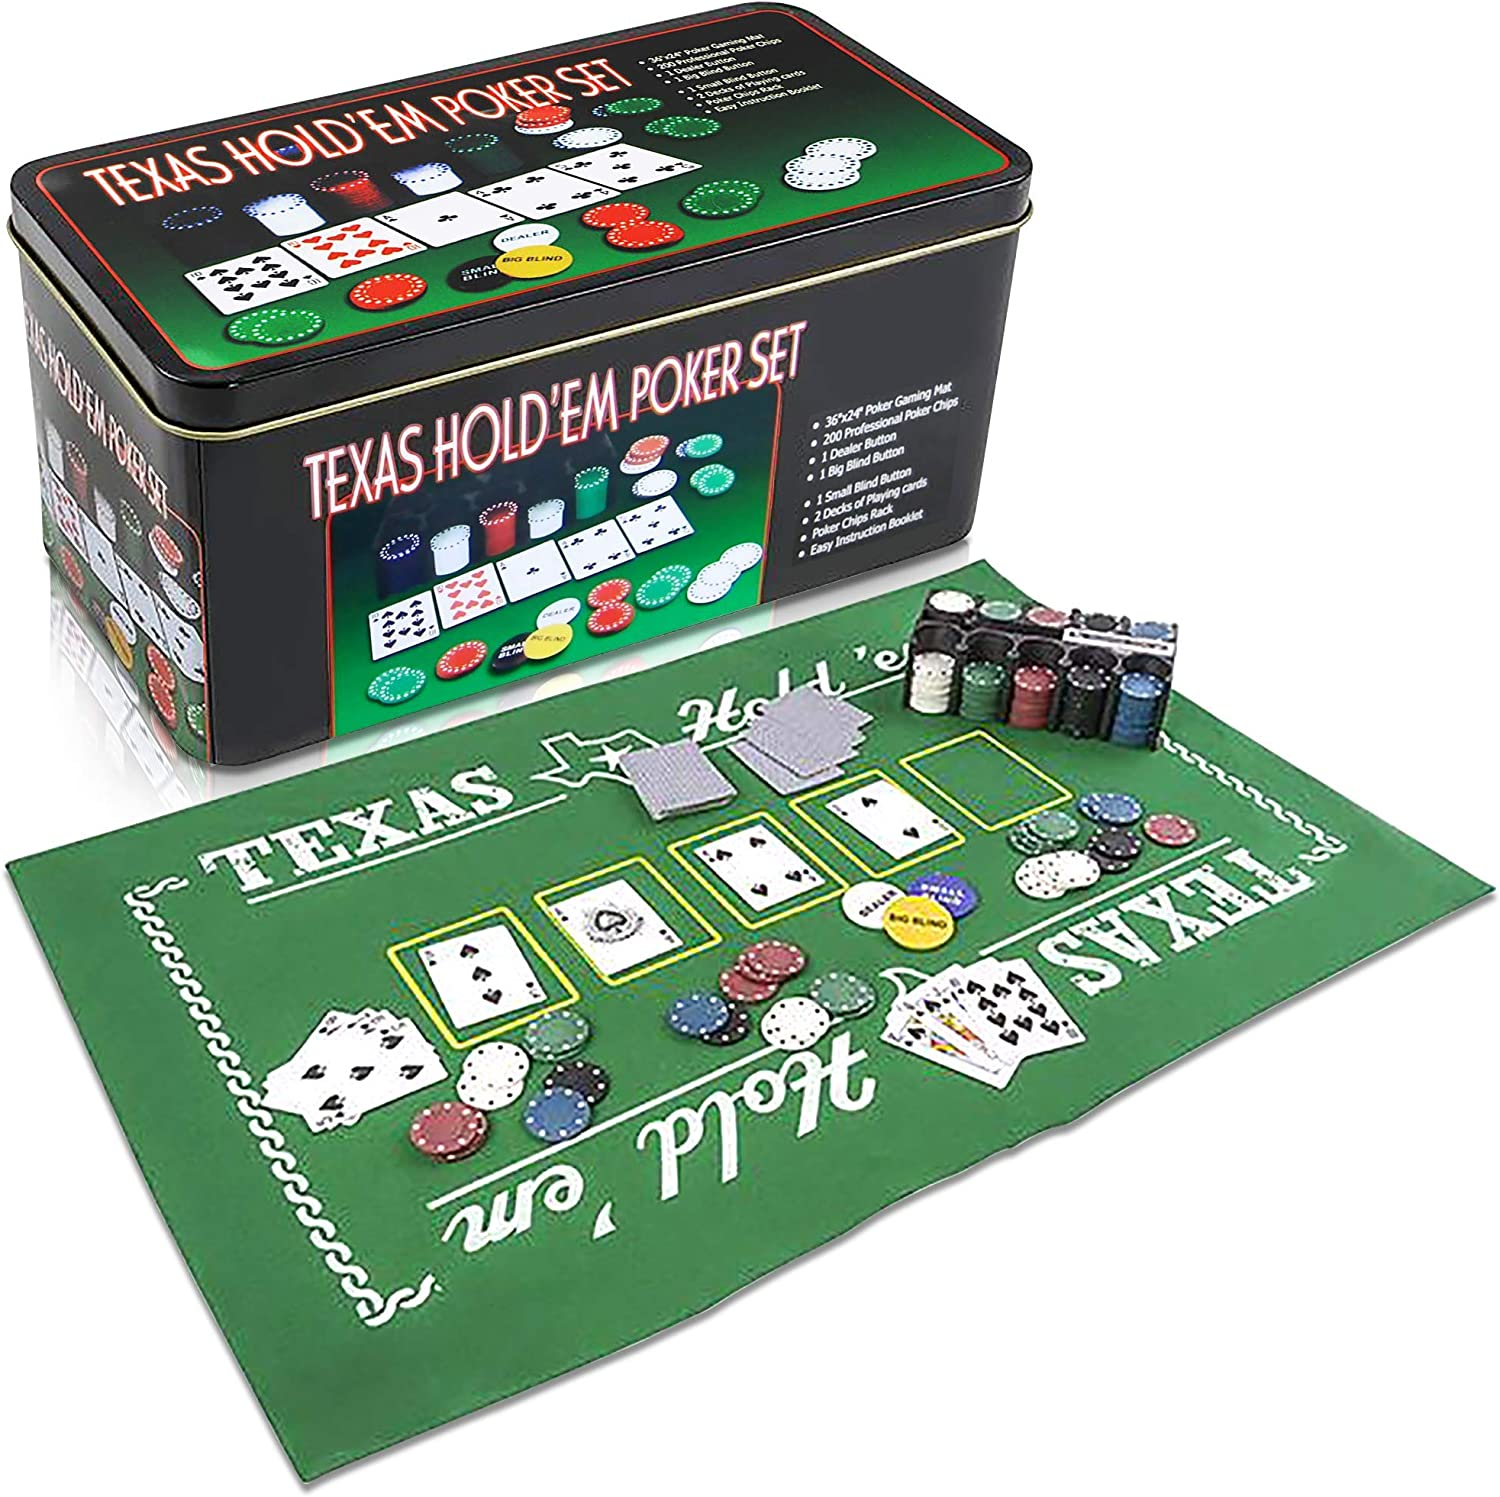 Image result for Texas Hold'em Poker Set